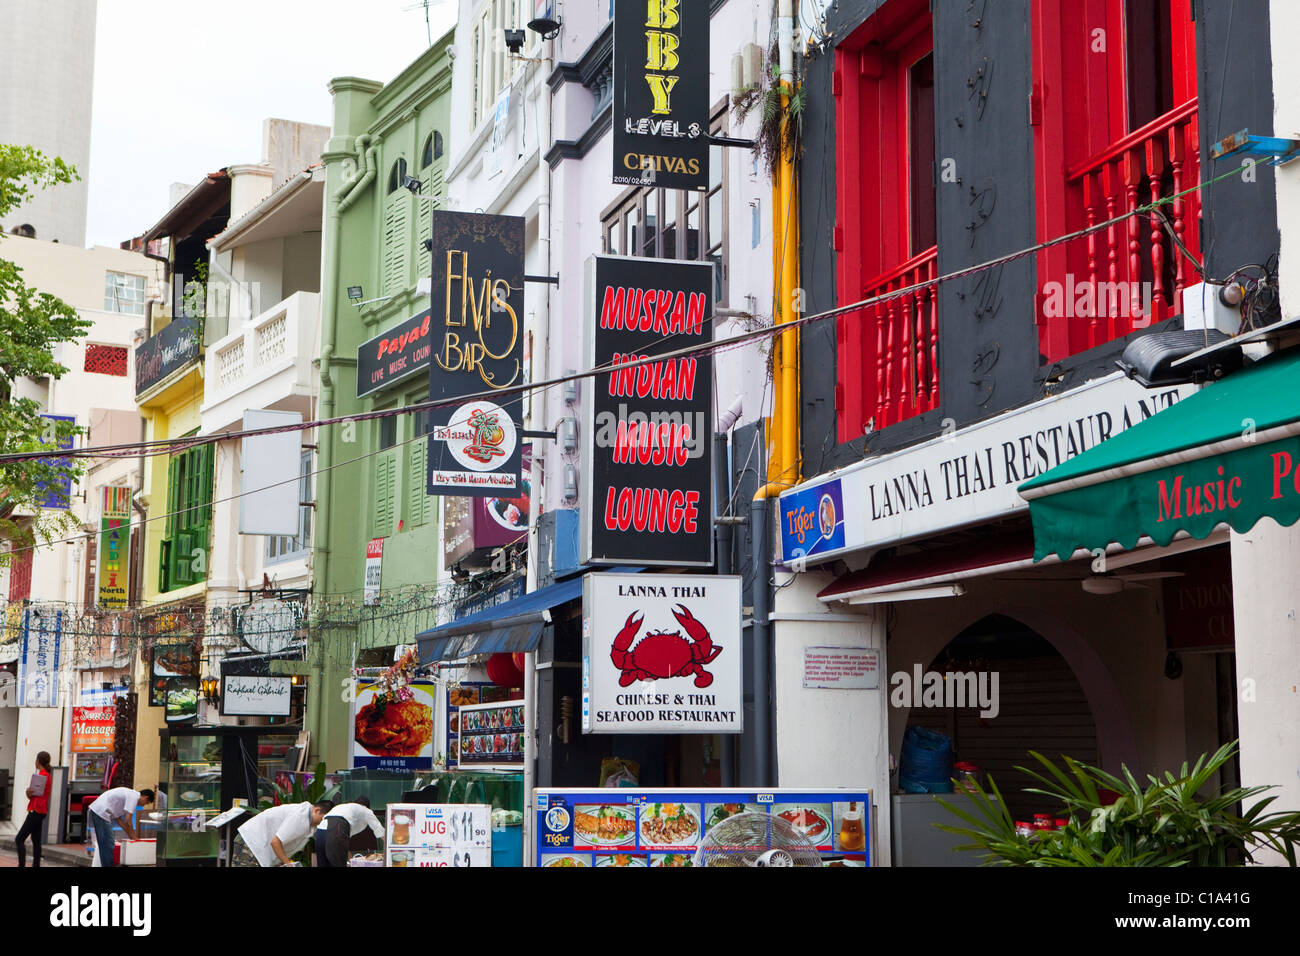 Bars and restaurants along Boat Quay, Singapore - Stock Image